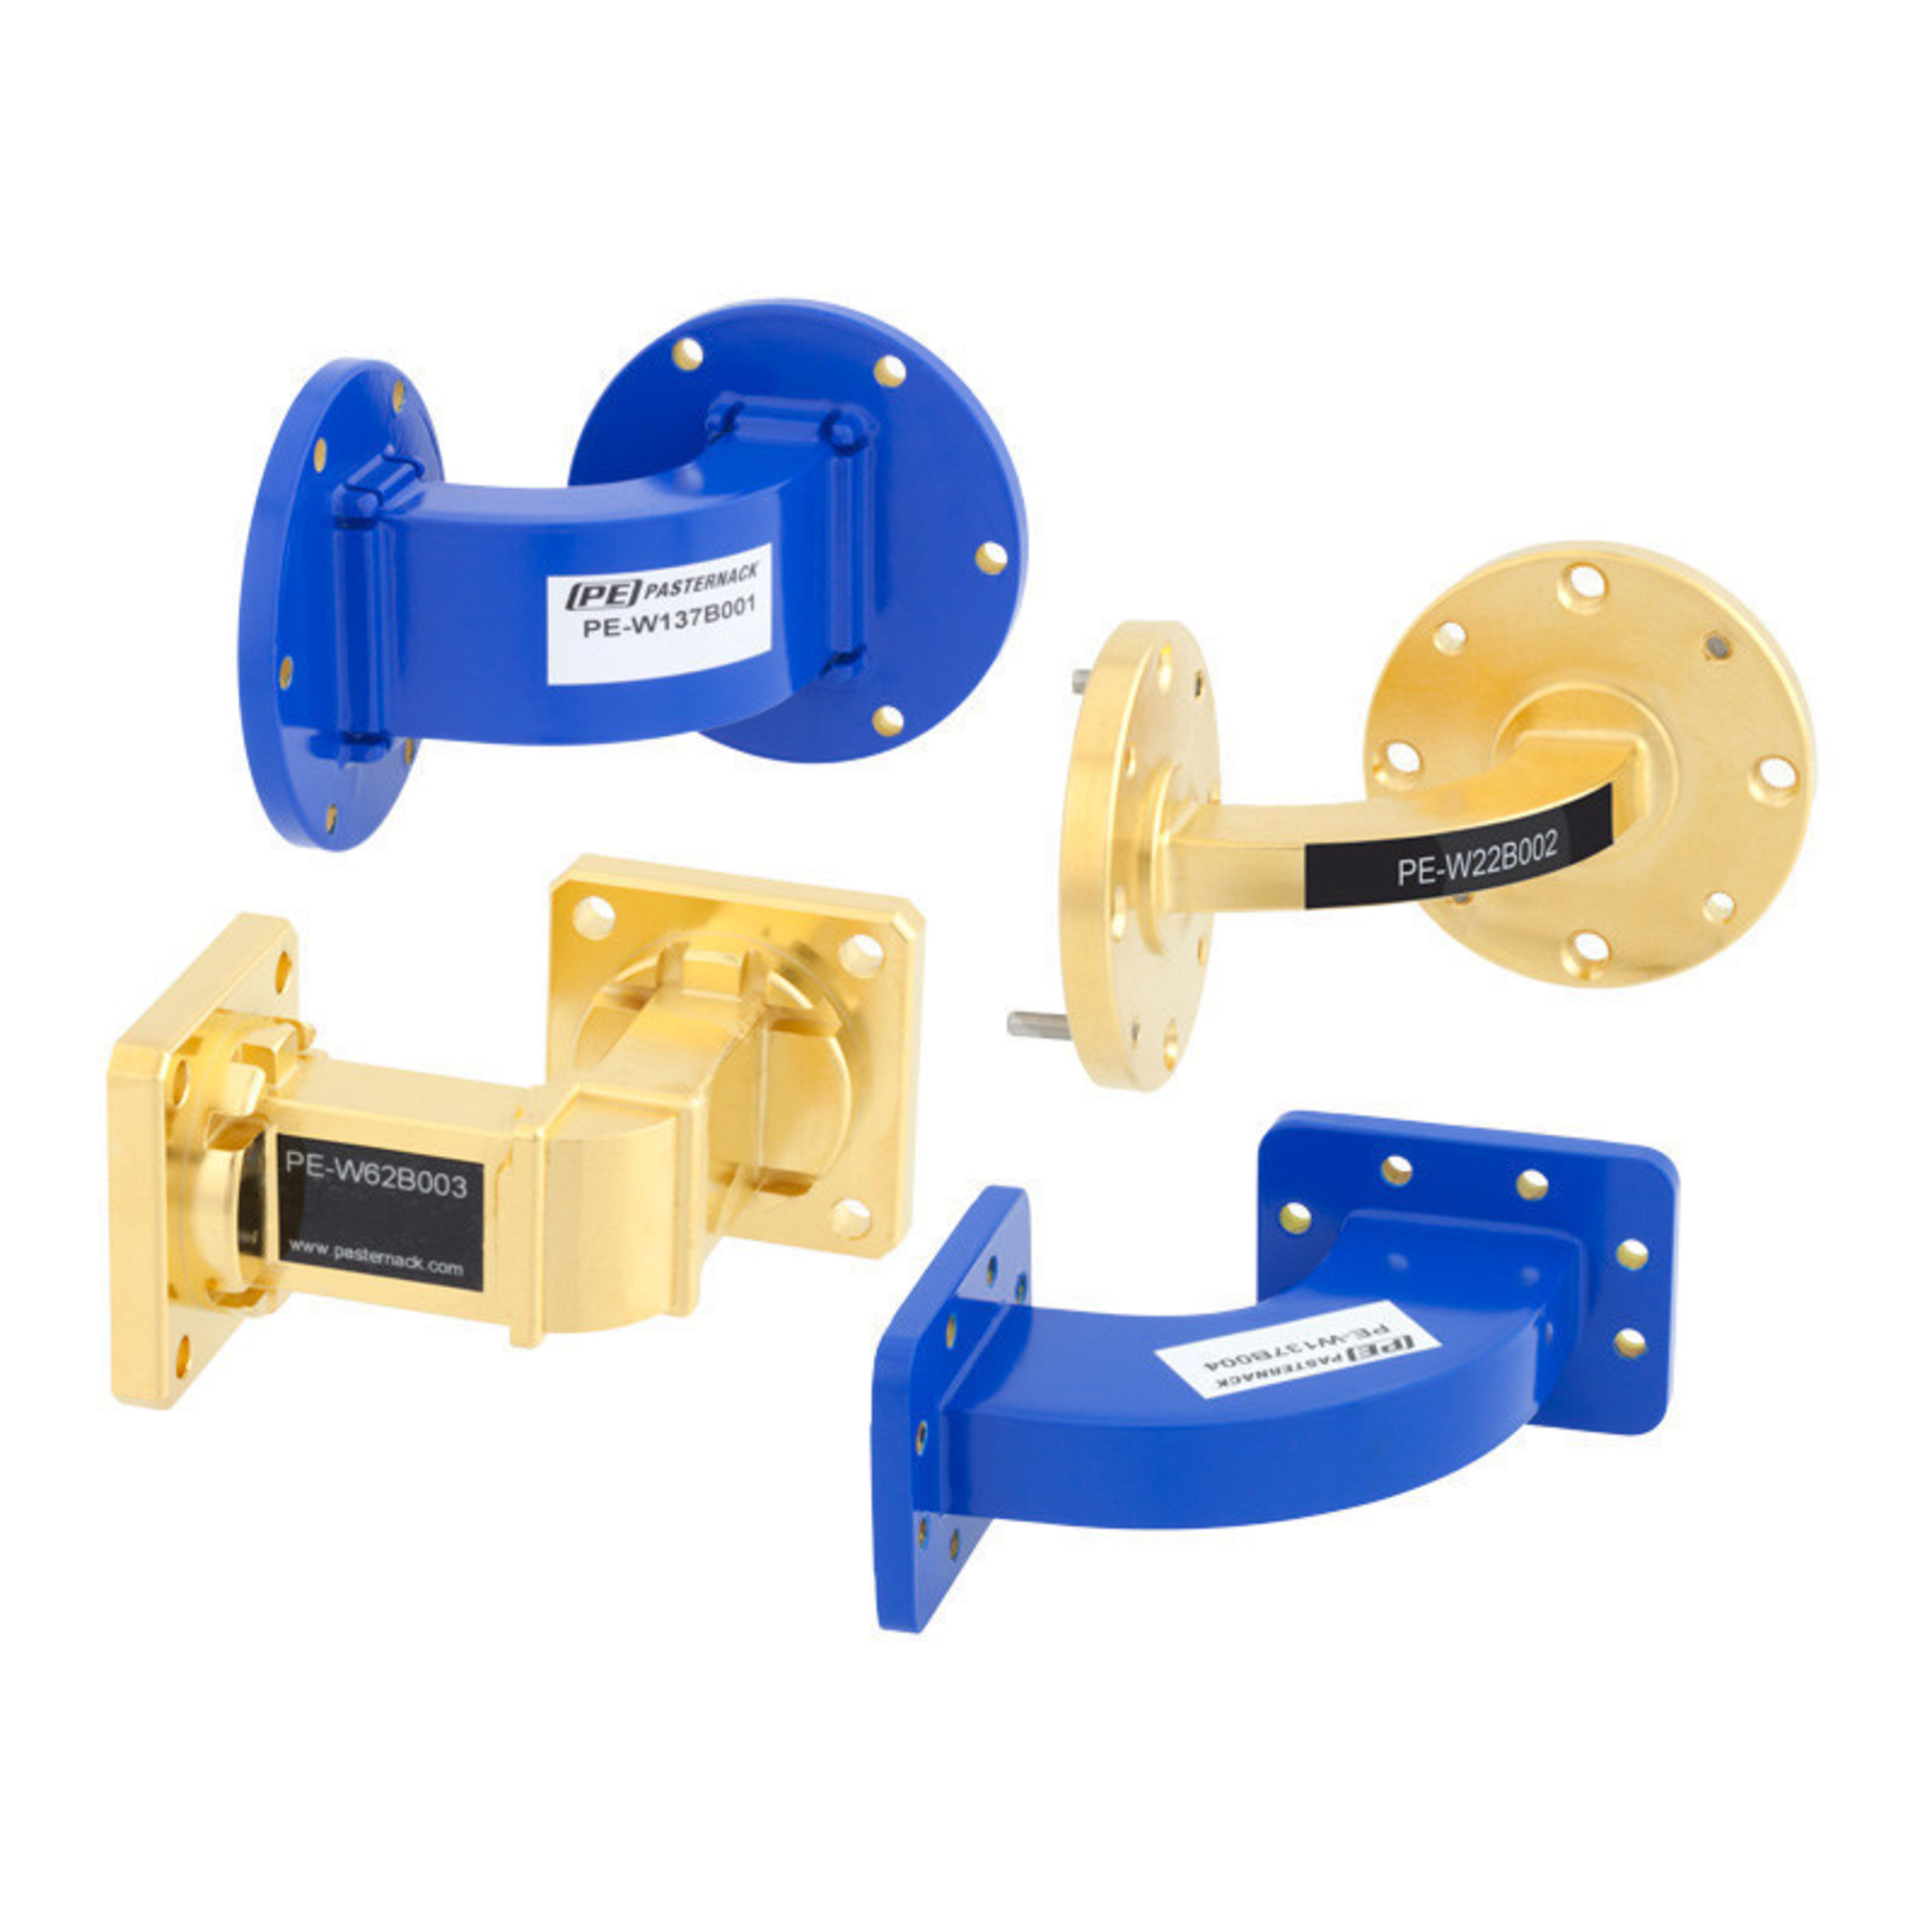 Pasternack Debuts New Lines of Waveguide Bends Up to 90 GHz across 12 Frequency Bands